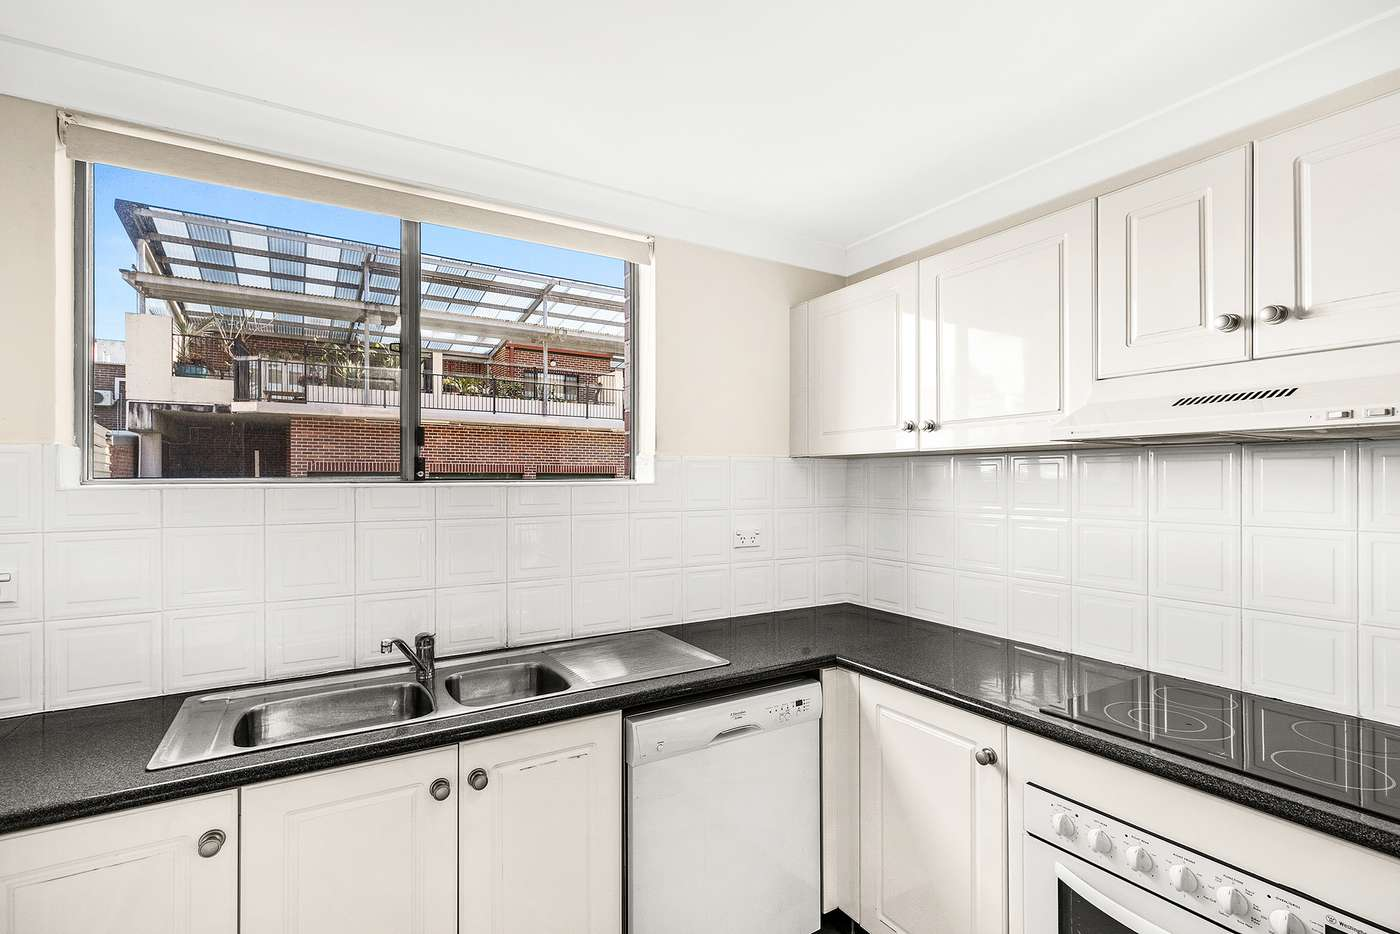 Fifth view of Homely townhouse listing, 2/138 Edenholme Road, Wareemba NSW 2046